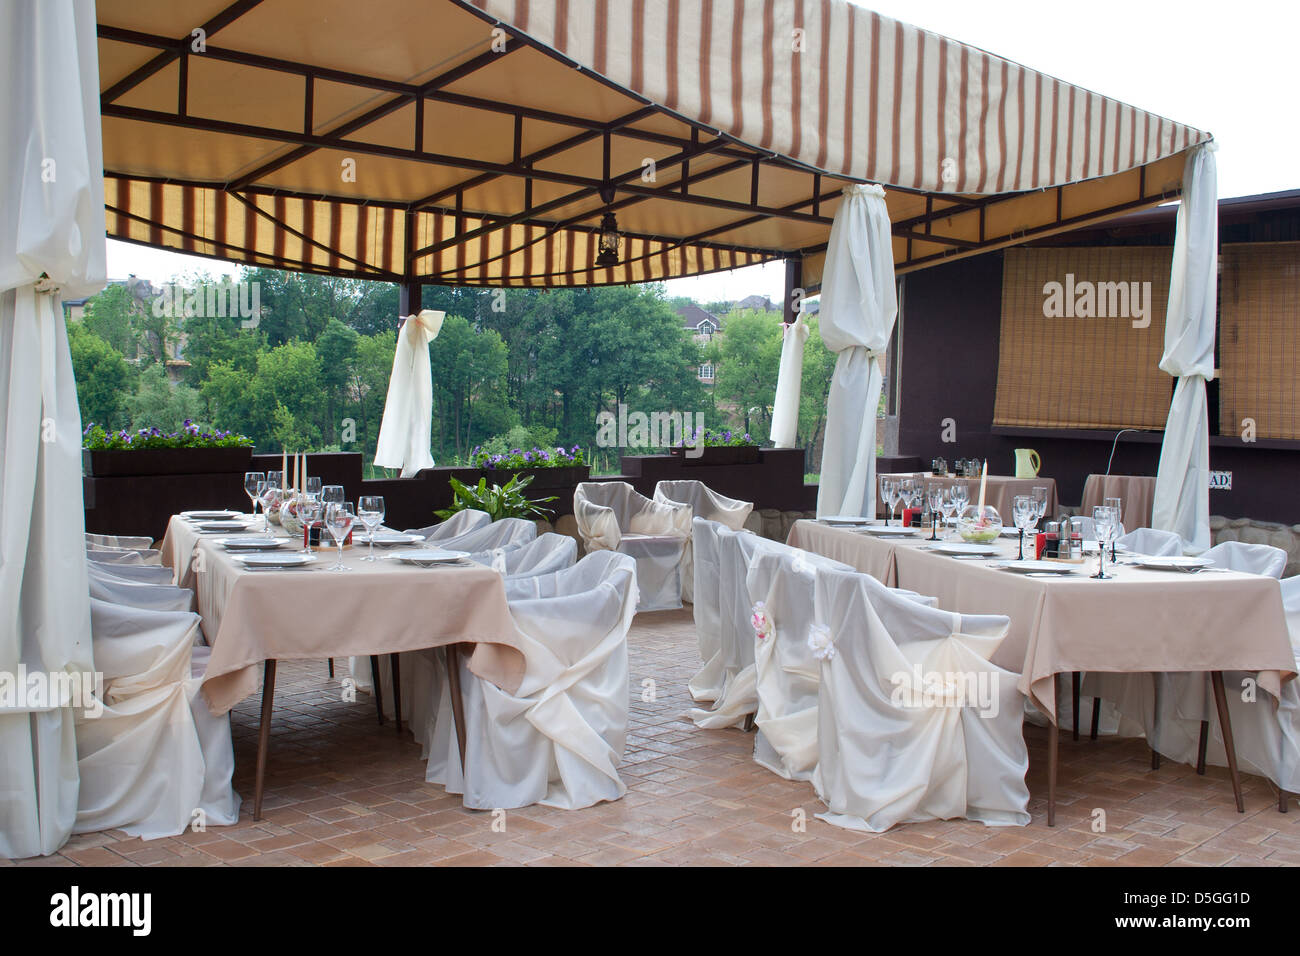 Restaurant table setup - Formal Breakfast Table Setup At Hotel Restaurant Interior Of A Restaurant In A Hotel During Evening